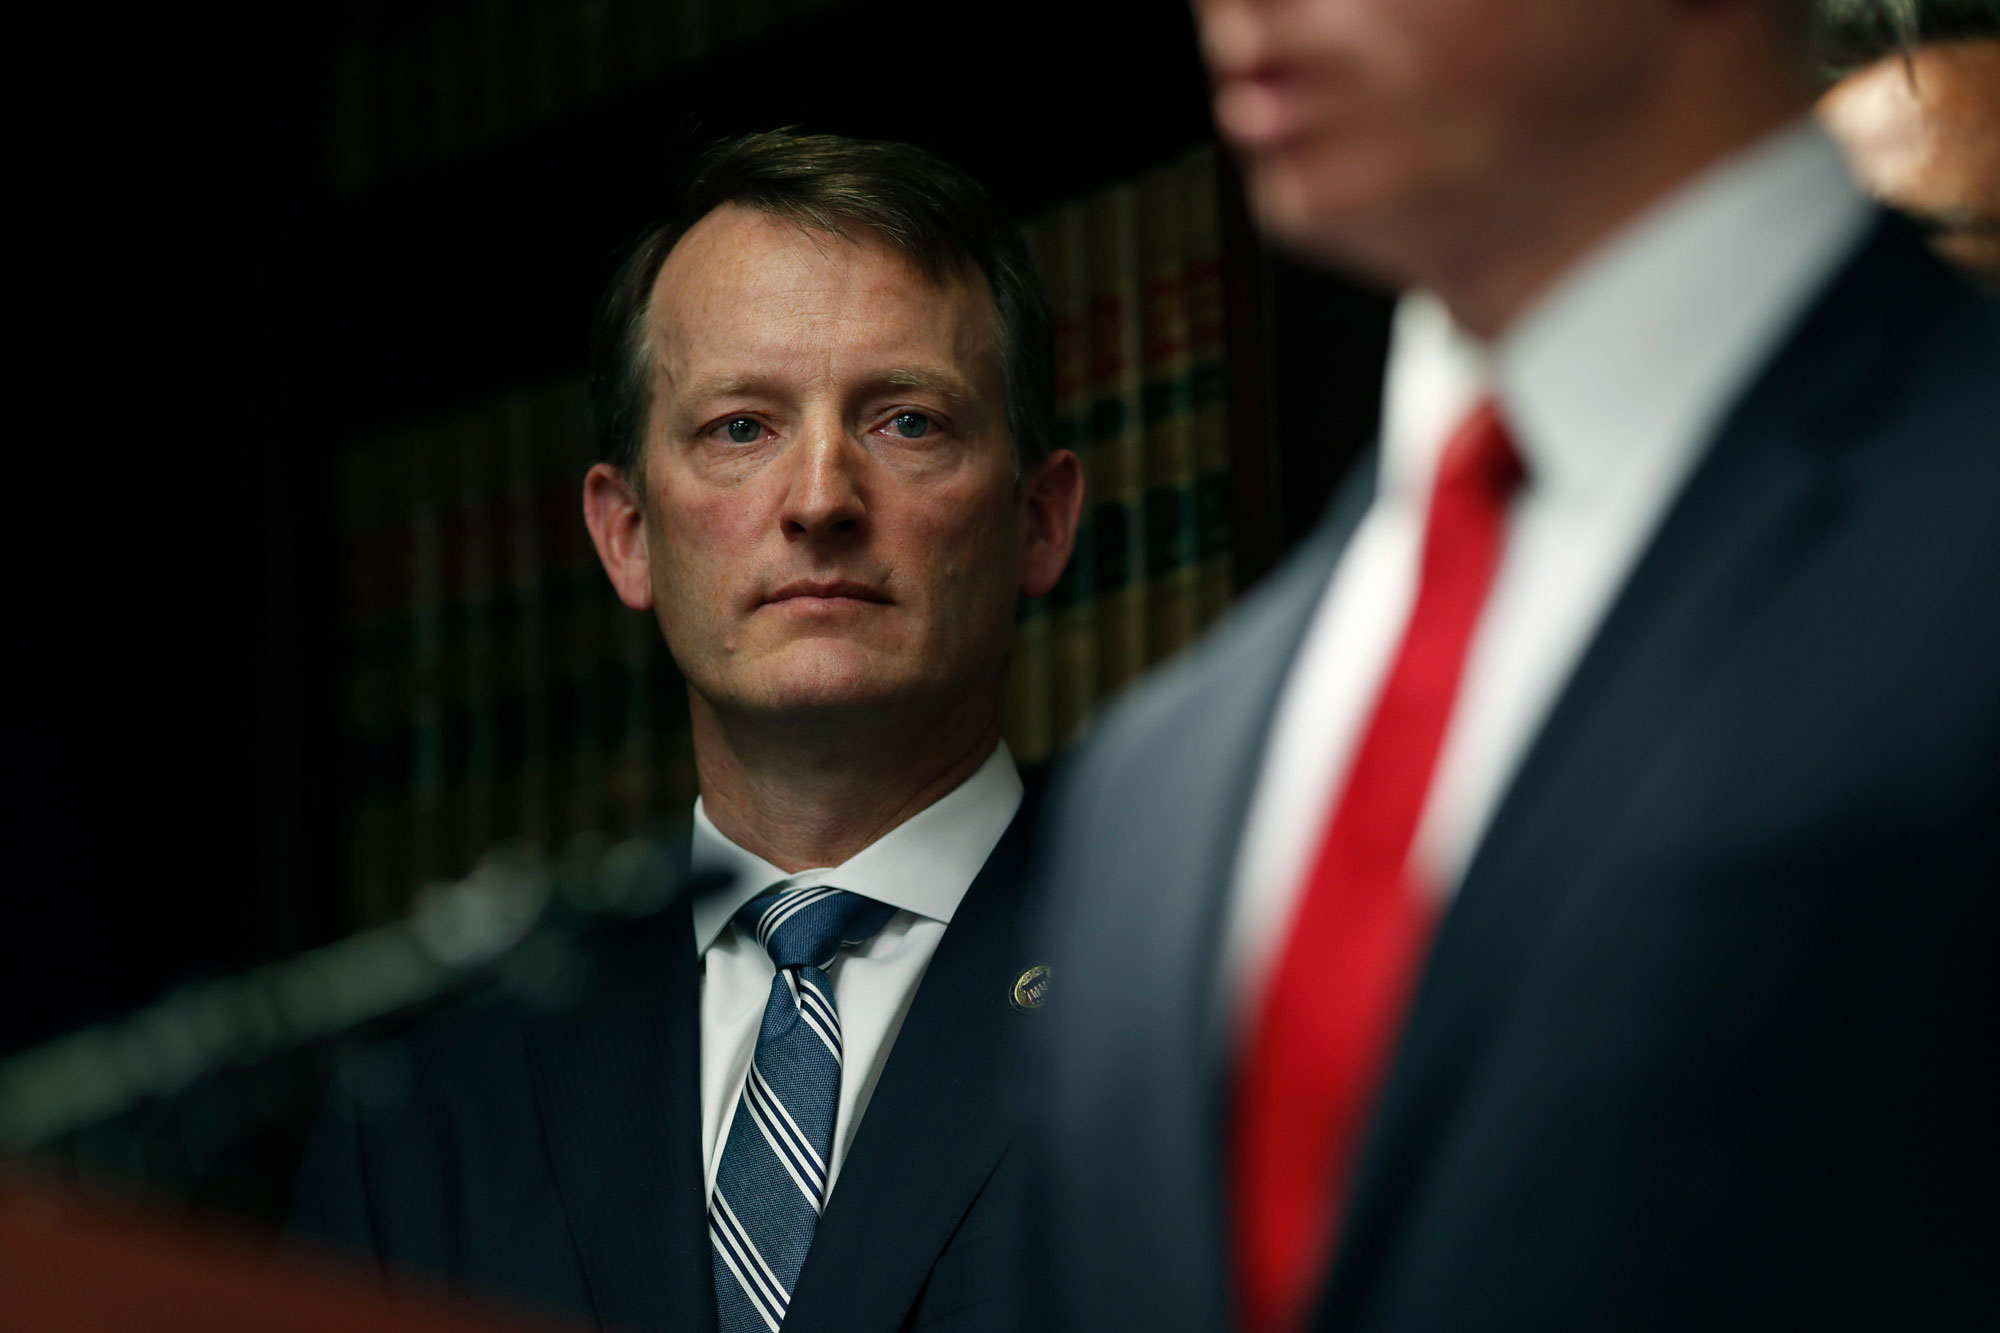 <p>U.S. Attorney Jason Dunn, left, listens as George Brauchler speaks during a news conference to announce the arrest of 42 people this week in one of the largest black market marijuana enforcement actions in the history of Colorado Friday, May 24, 2019, in Denver.</p>